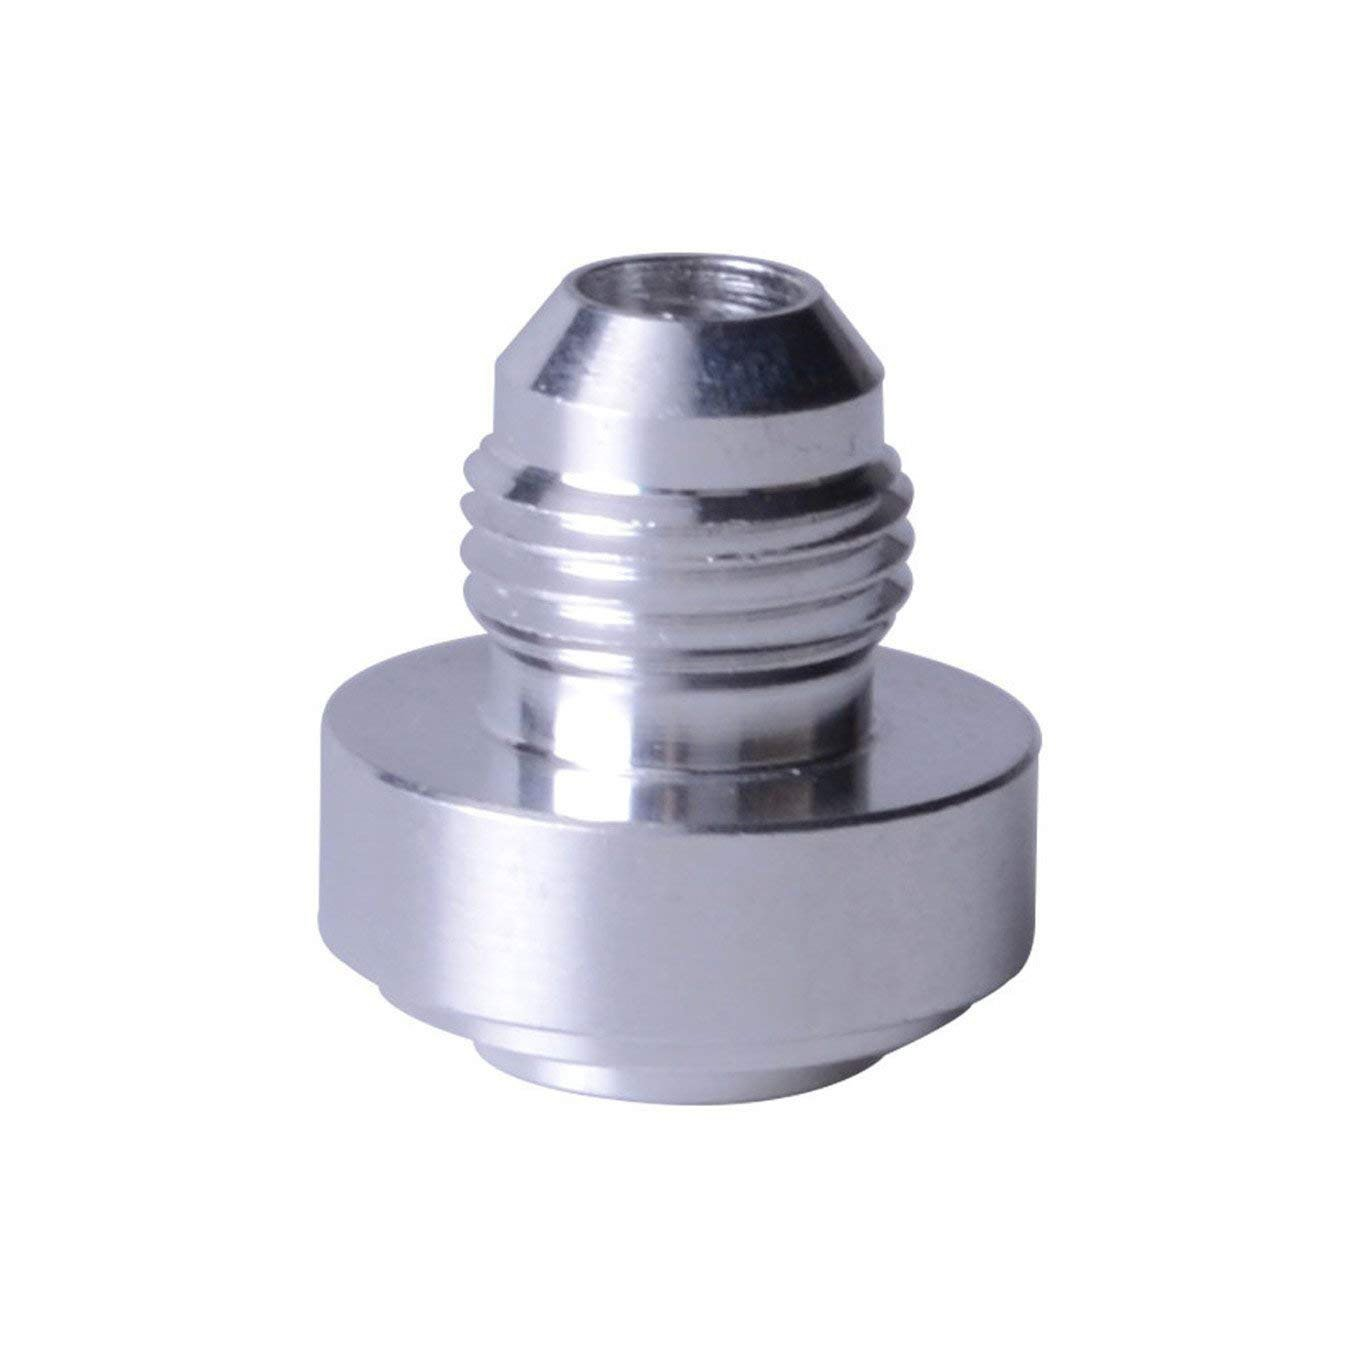 EVIL ENERGY 10AN AN10 Aluminum Weld on Bung Hose Adapter Fuel Oil Fitting Speedwow Tuning